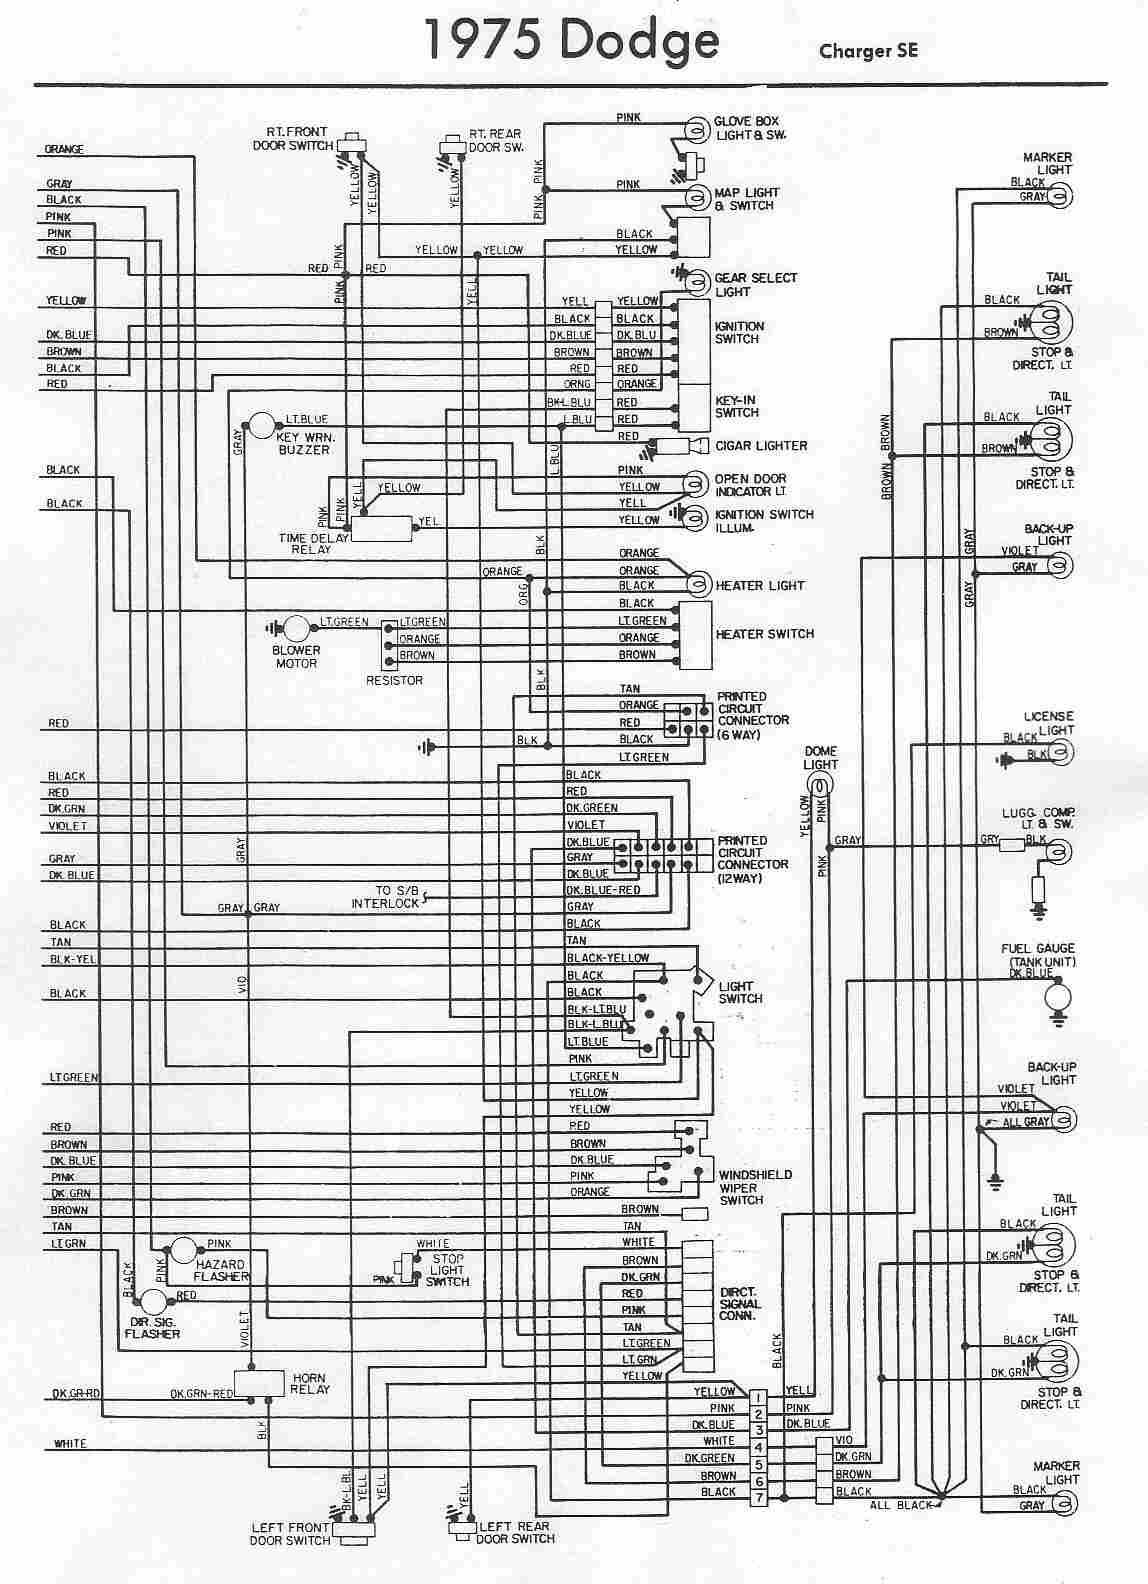 small resolution of 1973 dodge w200 wiring diagram wiring diagram library1978 dodge power wagon wiring diagram wiring diagram g11